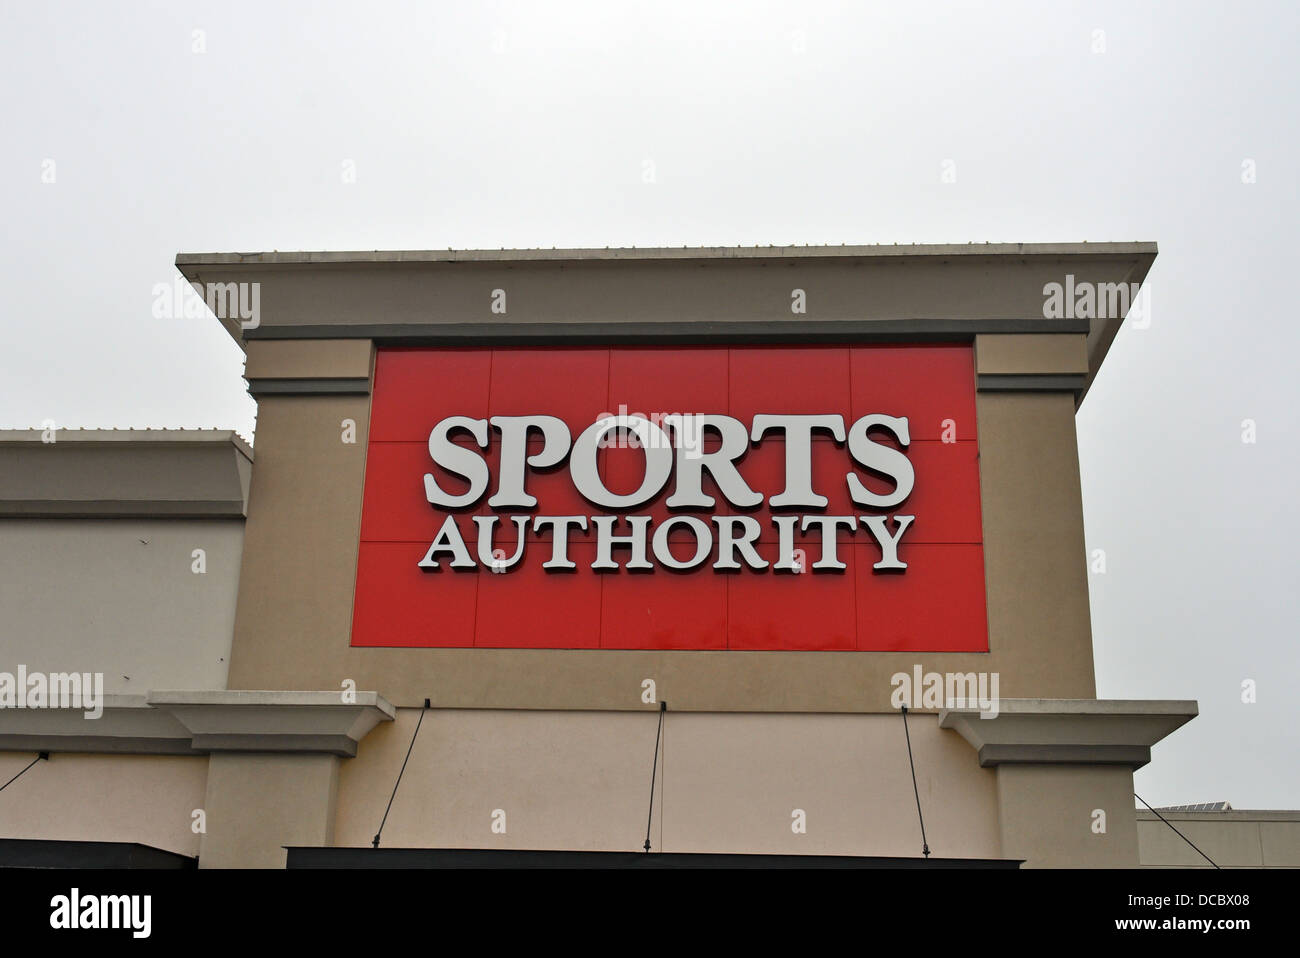 Sports Authority retail store sign - Stock Image